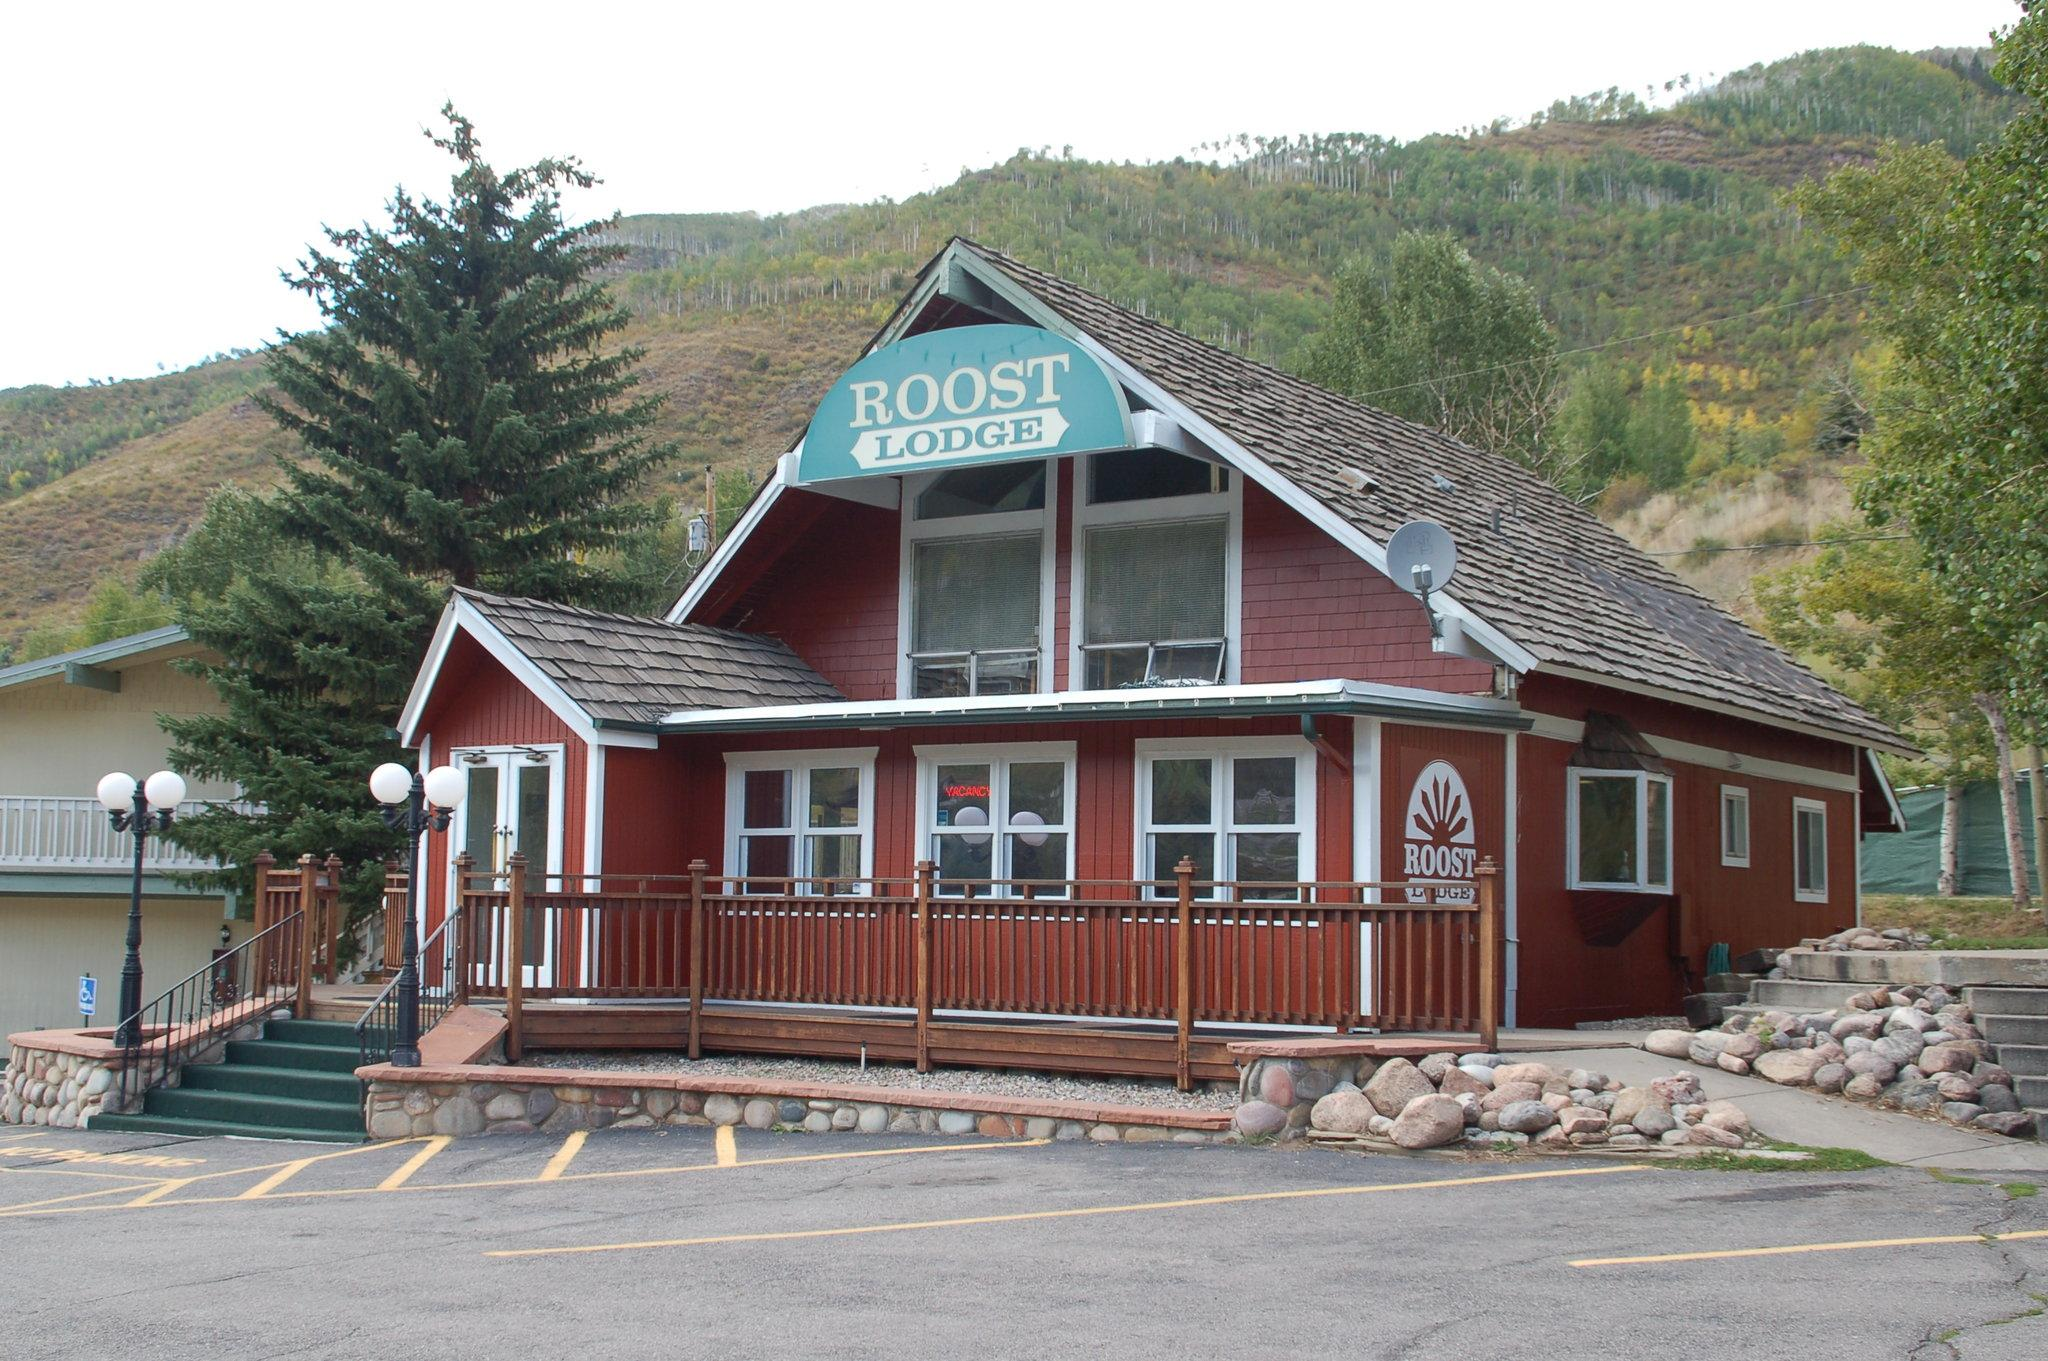 Roost Lodge